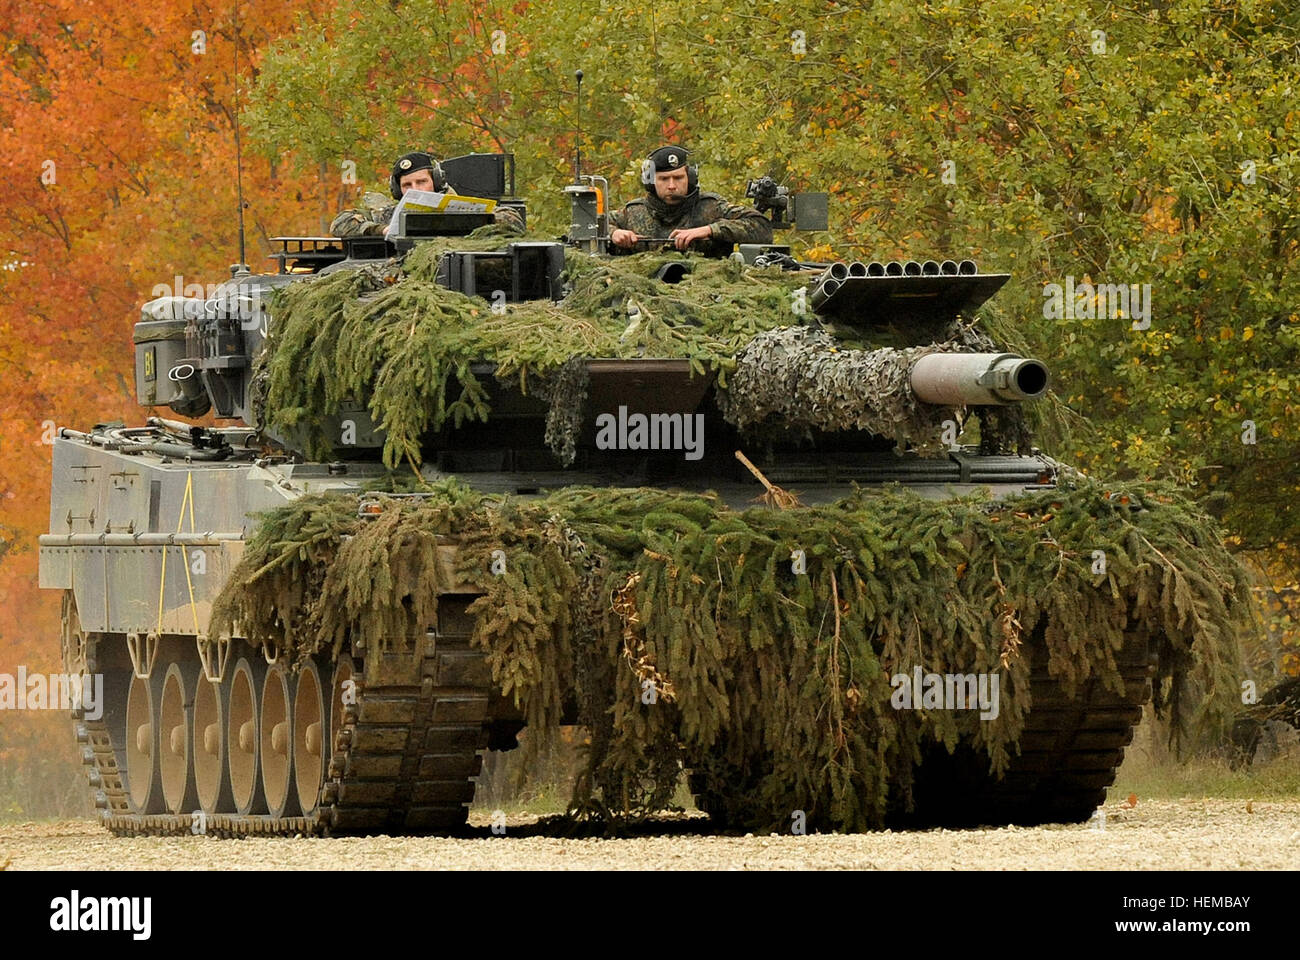 A German Army Leopard II tank, assigned to 104th Panzer Battalion, moves through the Joint Multinational Readiness - Stock Image